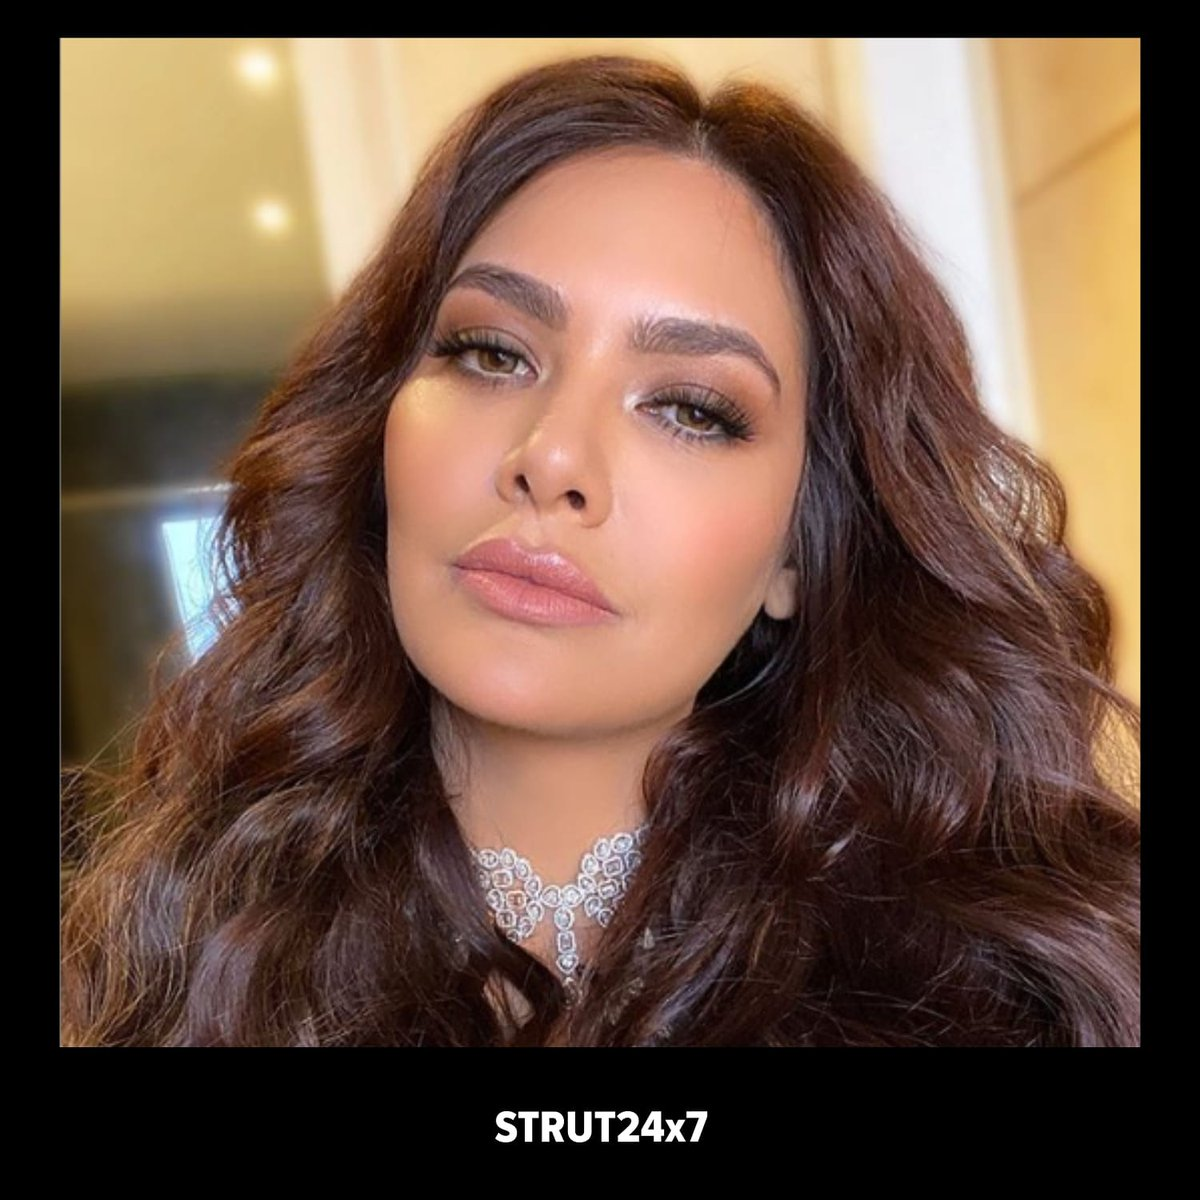 This eye glam is drama with a captial D #ReshmaMerchant for @eshagupta2811 We're totally loving the murky lashes and glitzy eyeshadow paired with scintillating foundation#EyeLook #LashesForDays #EshaGupta #Strut24x7pic.twitter.com/PcRlVIKJG0